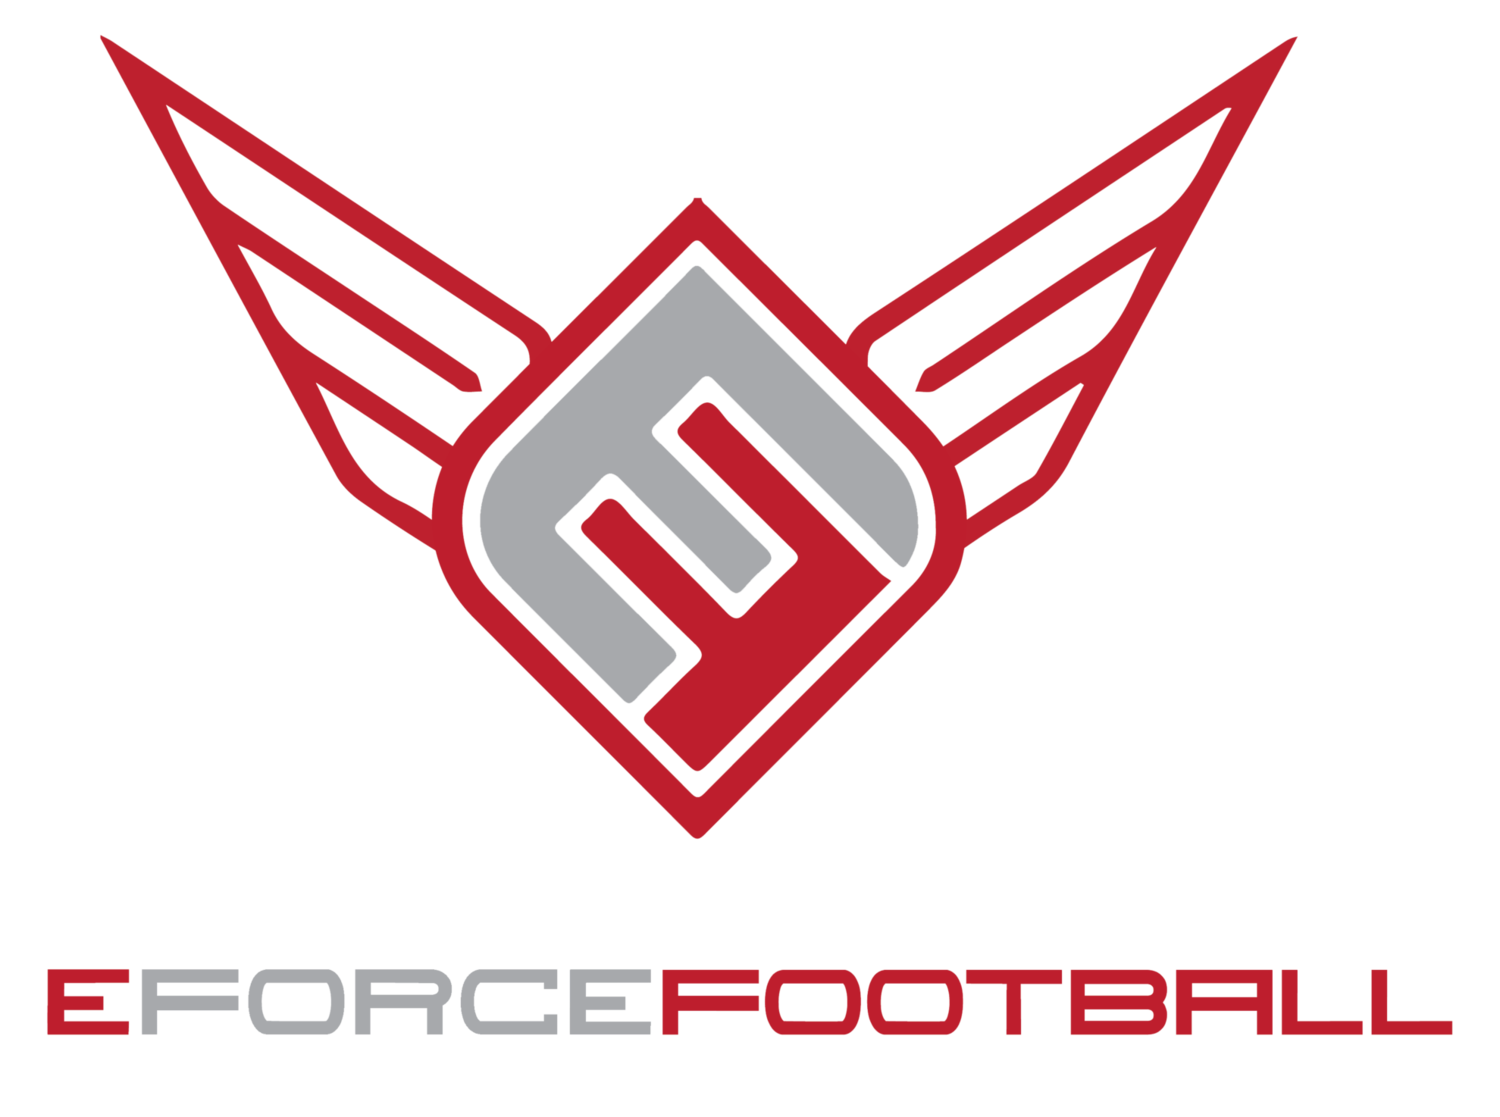 EForce Football